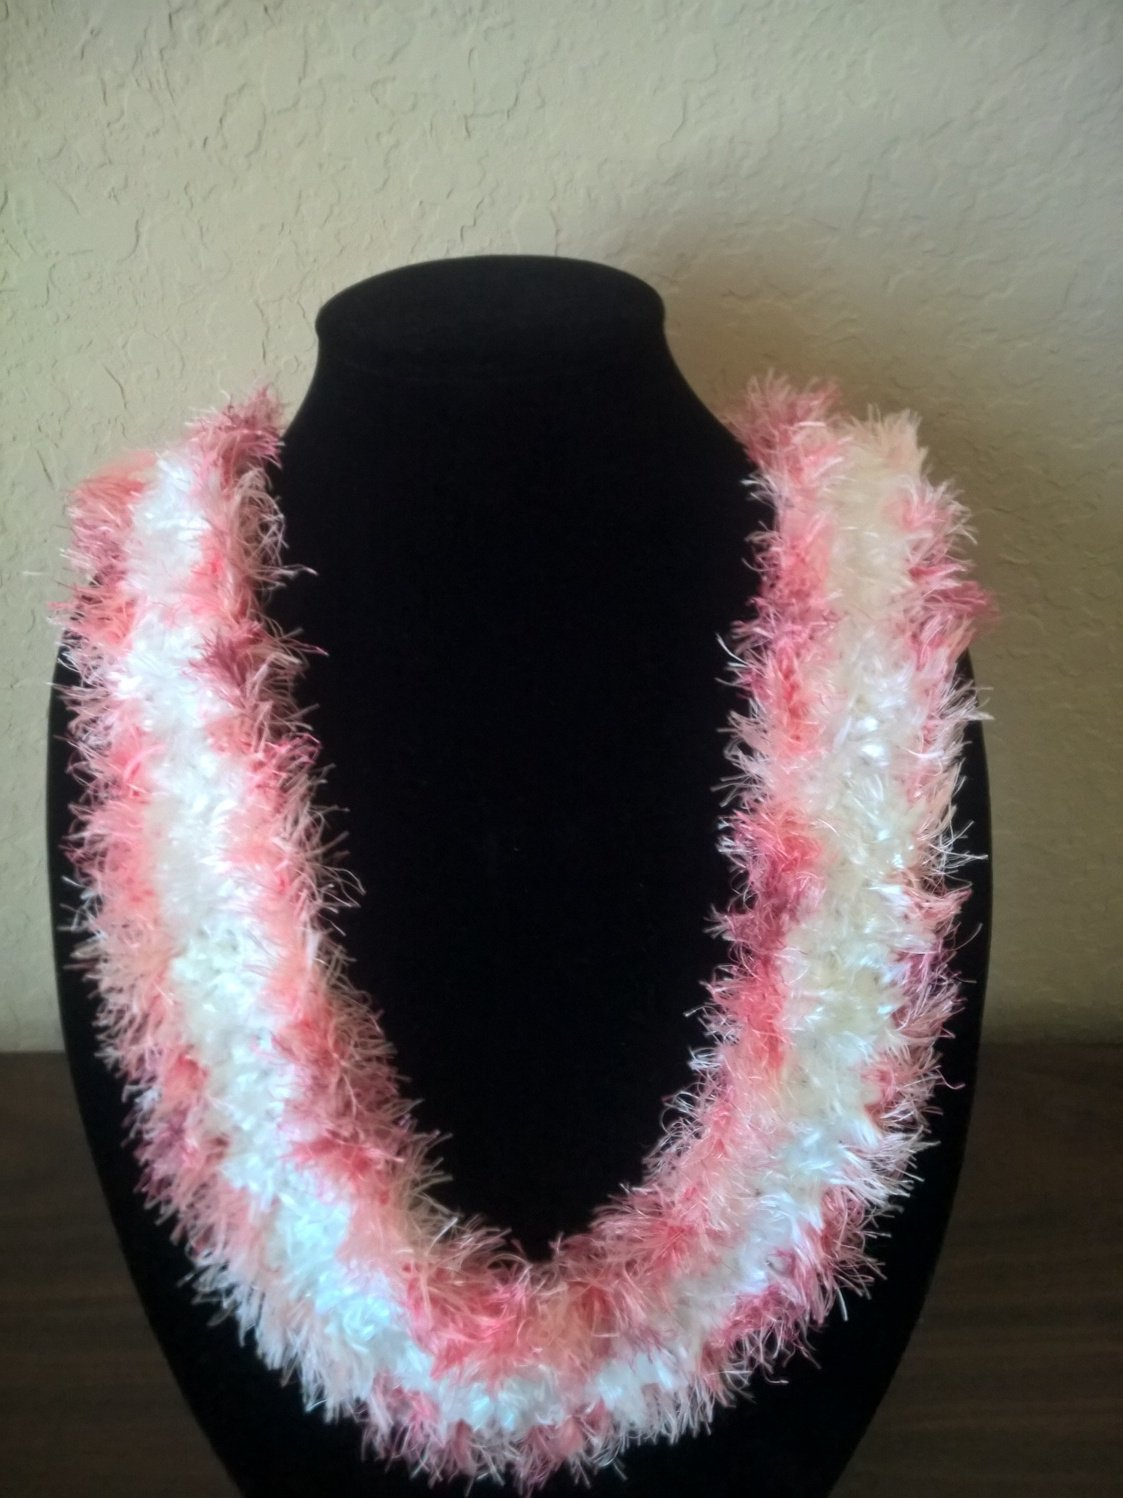 Hawaiian lei Christina flat orchid crochet w/ white eyelash center and contrasting pink edges